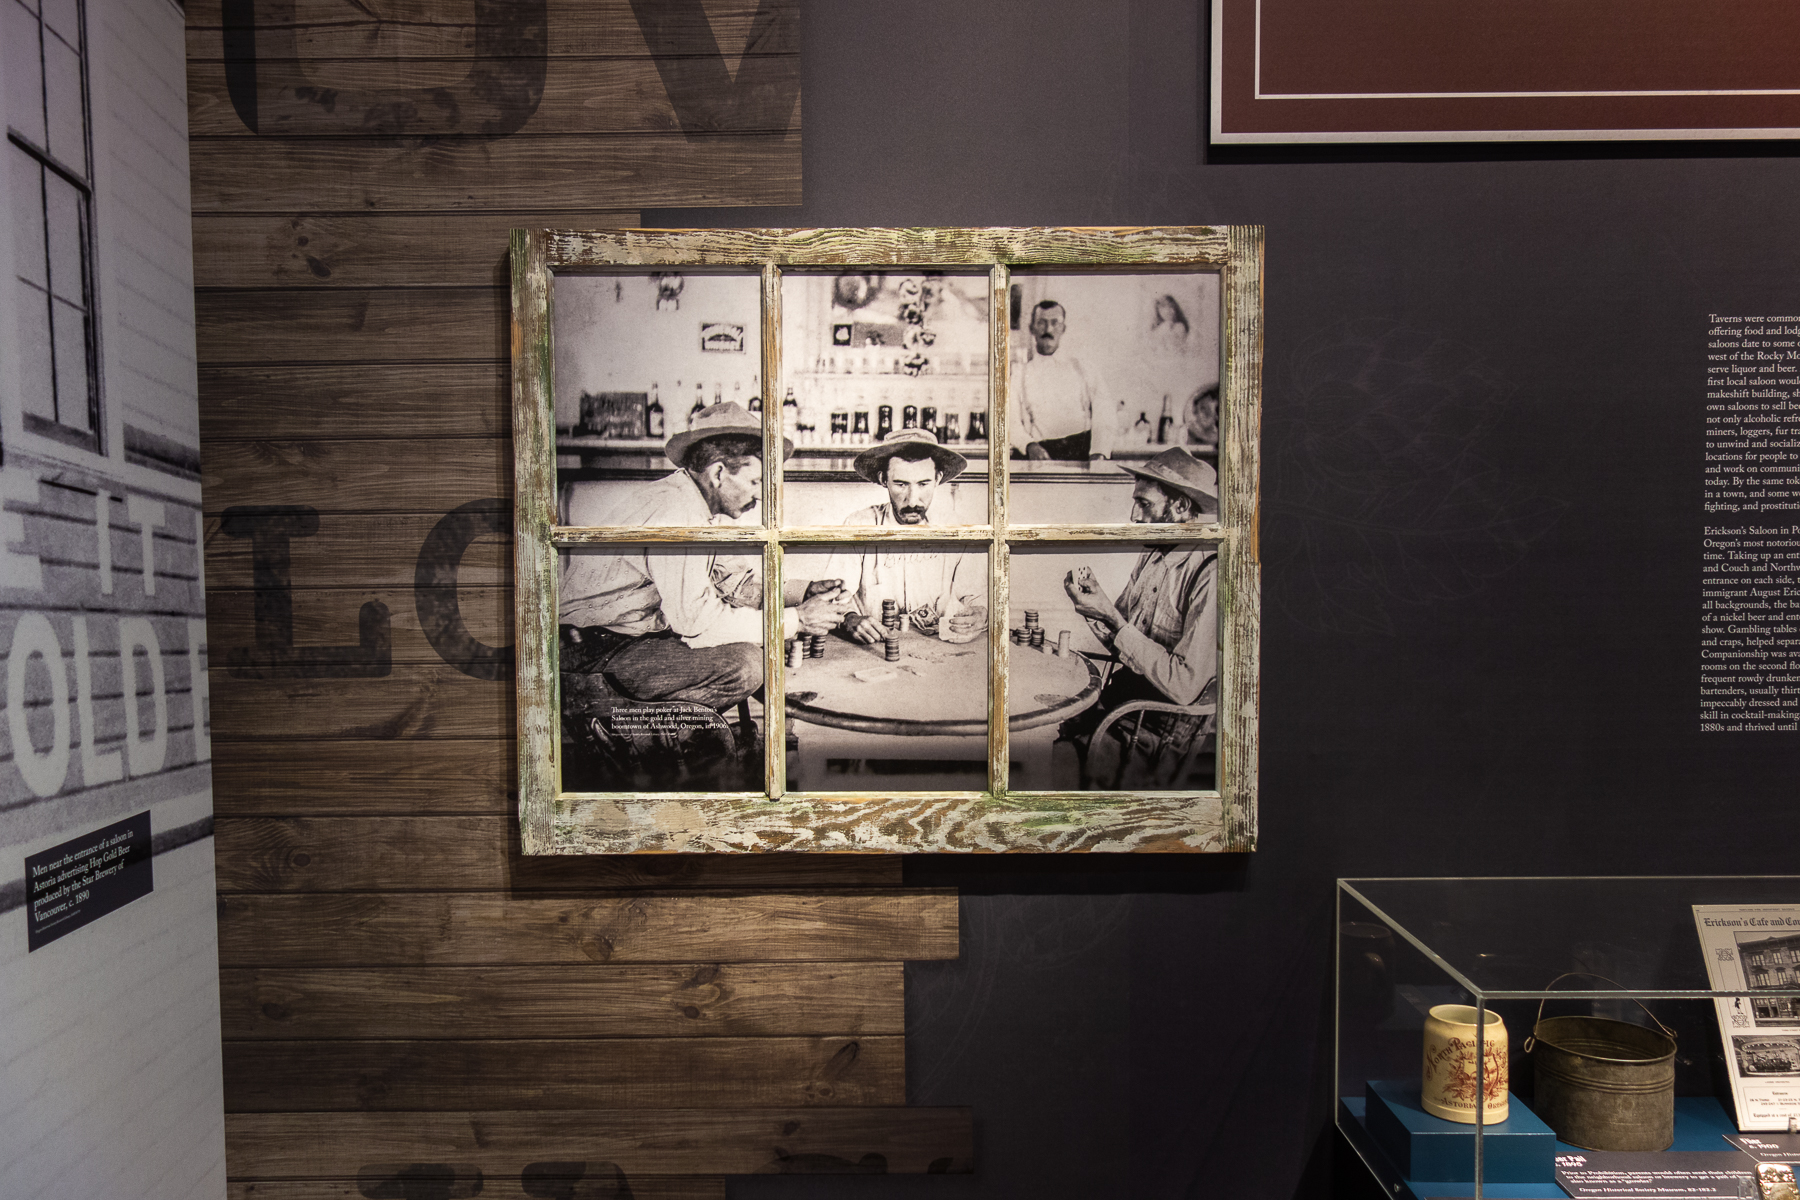 Our shop custom built these weathered windows with historical images of scenes inside of a saloon back mounted to them.